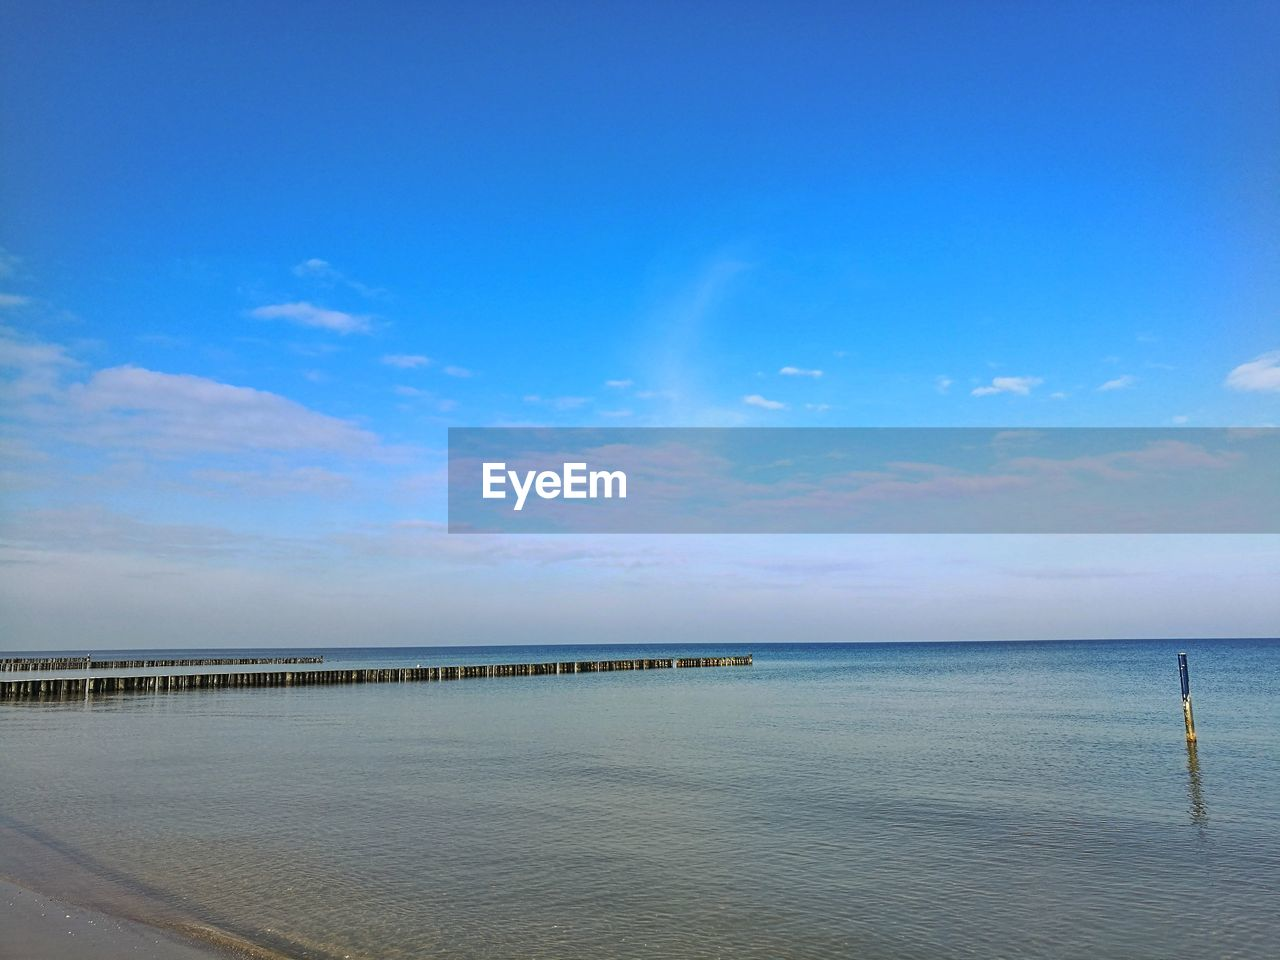 water, nature, scenics, beauty in nature, sea, tranquility, tranquil scene, no people, sky, horizon over water, day, outdoors, blue